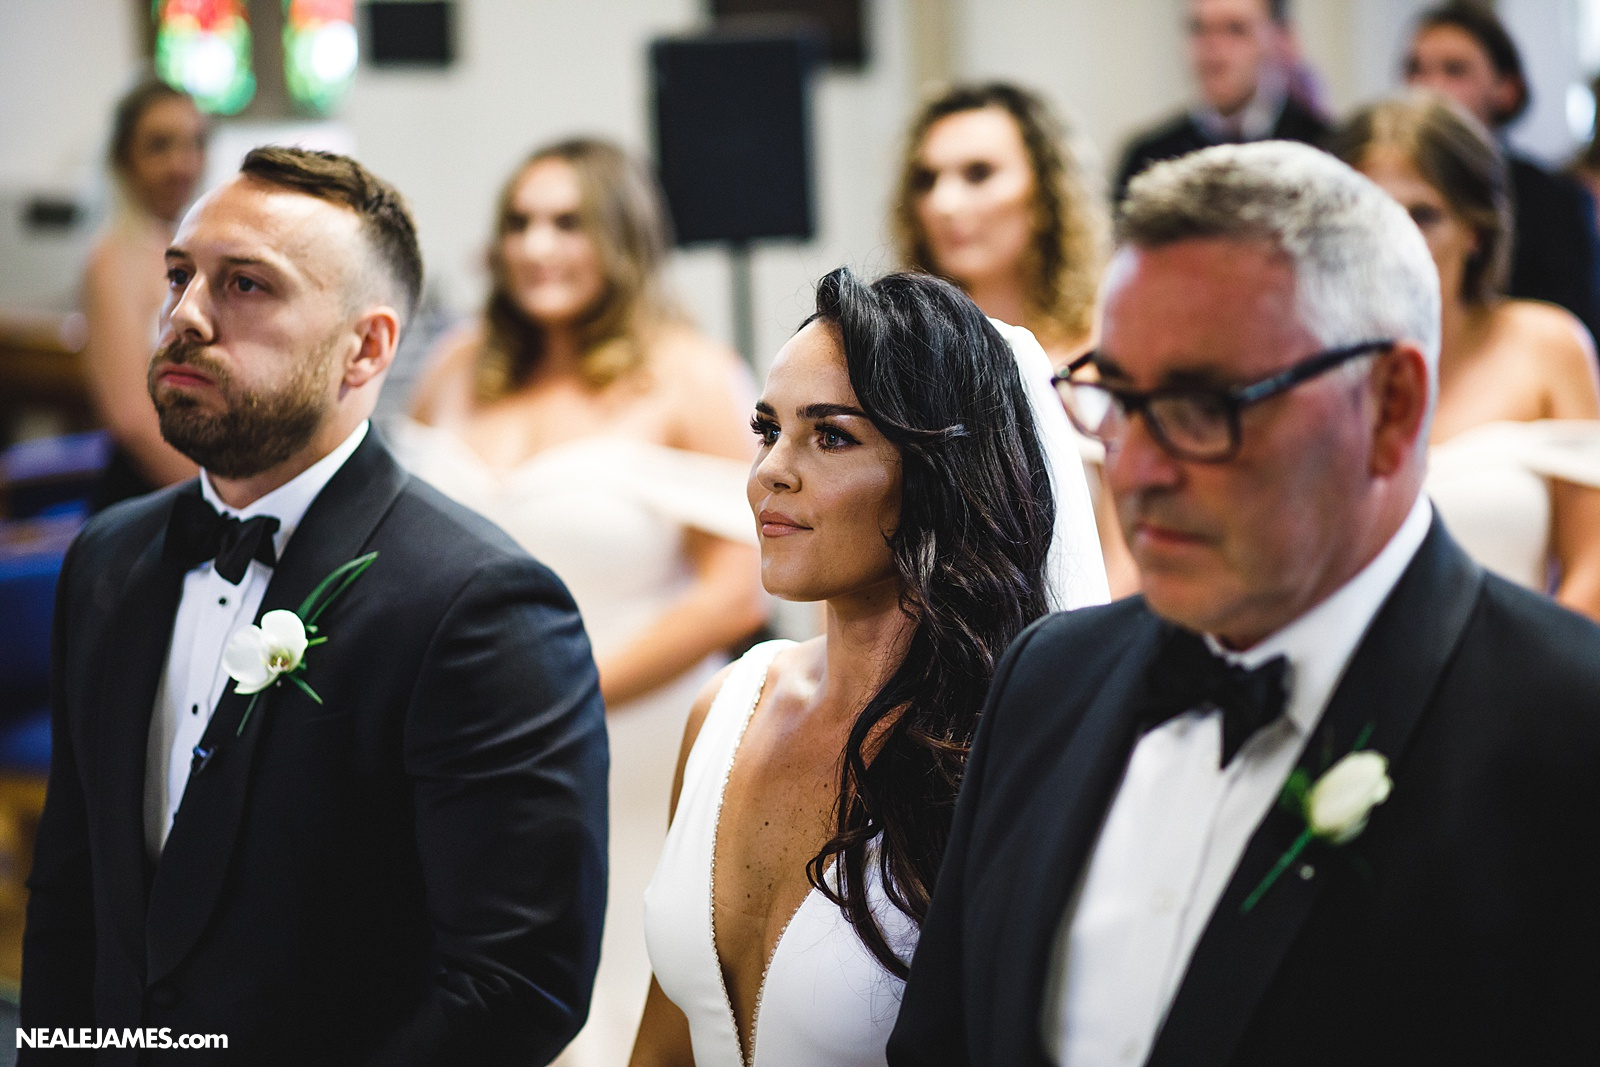 Colour picture of the moment a groom realises the significance of the day standing before the alter with his wife